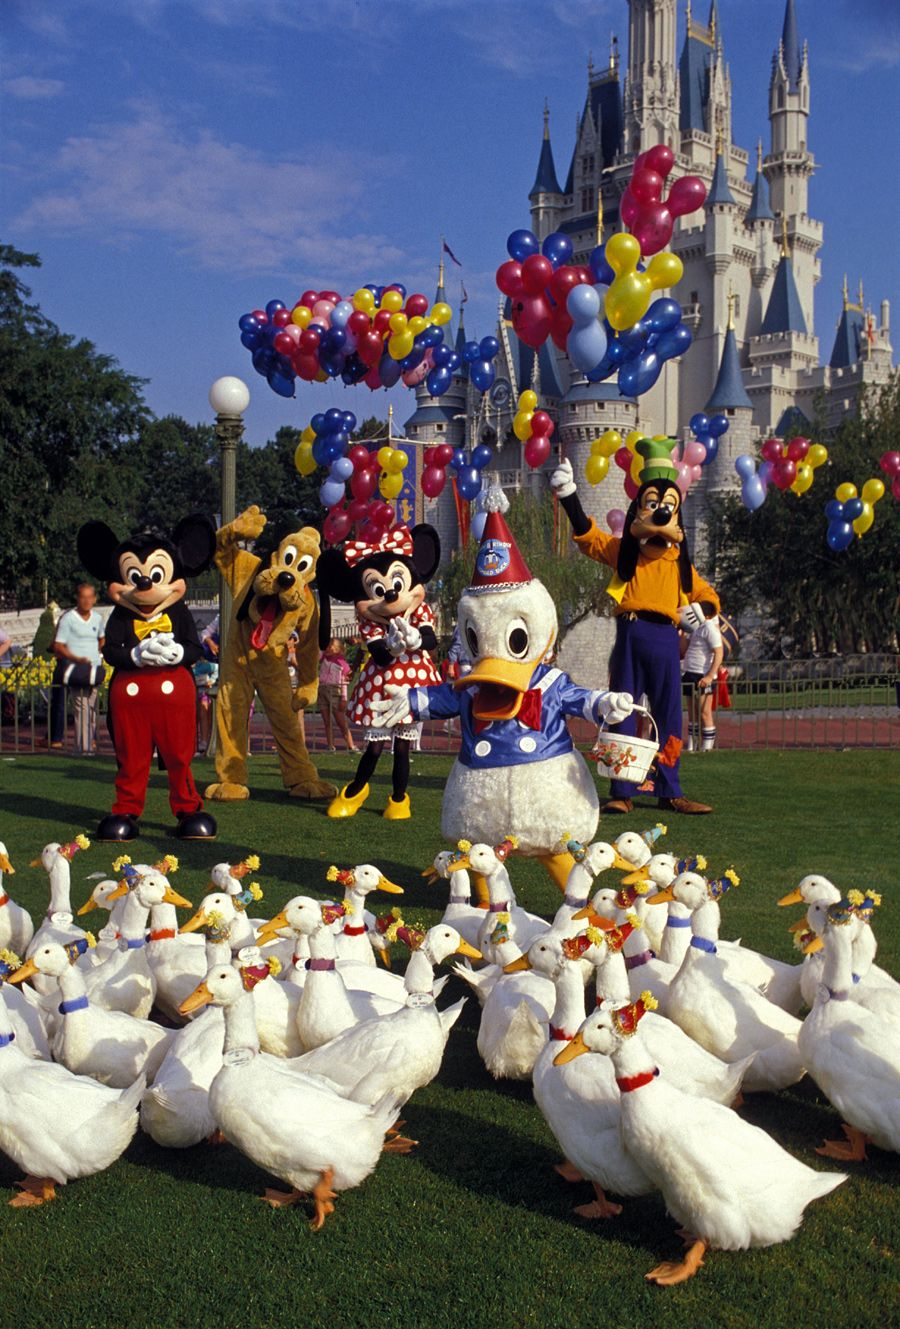 Donald Duck celebrates his birthday with family and